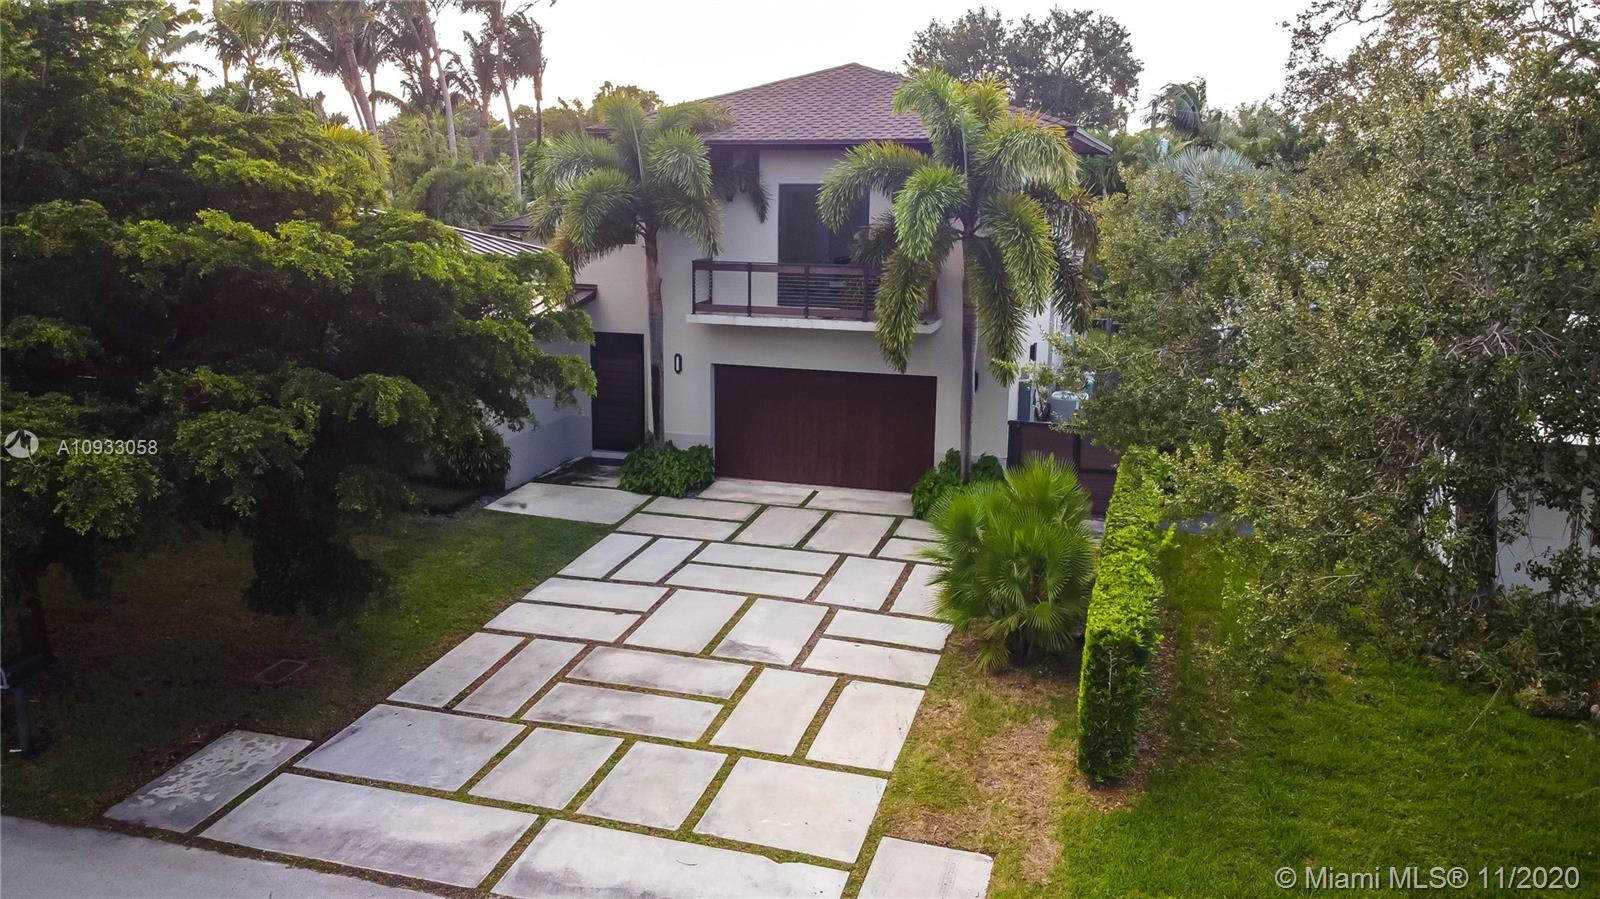 Balinese-chic style with custom finishes everywhere. Huge open floor-plan with 20-foot ceilings, bamboo flooring, and 30X30 marble tiles. 4 Very large bedrooms all with en-suite bathrooms, with the potential for a 5th bedroom. Top of the line Scavolini kitchen with Calcutta island & counter, Miele, & Sub-Zero appliances. Large space currently used as a huge office, also with full bath. Entire interior space overlooks the gorgeous private courtyard or secluded pool/spa area. 4 A/C units, security system with cameras to keep each area feeling perfectly comfortable and safe. Room for 7 vehicles. Prime location E of US 1 with lots of multi-million dollar properties, also close to Fuchs Park, Sunset Place, Dadeland Mall, major highways, U of M, A-rated schools, and hospitals.